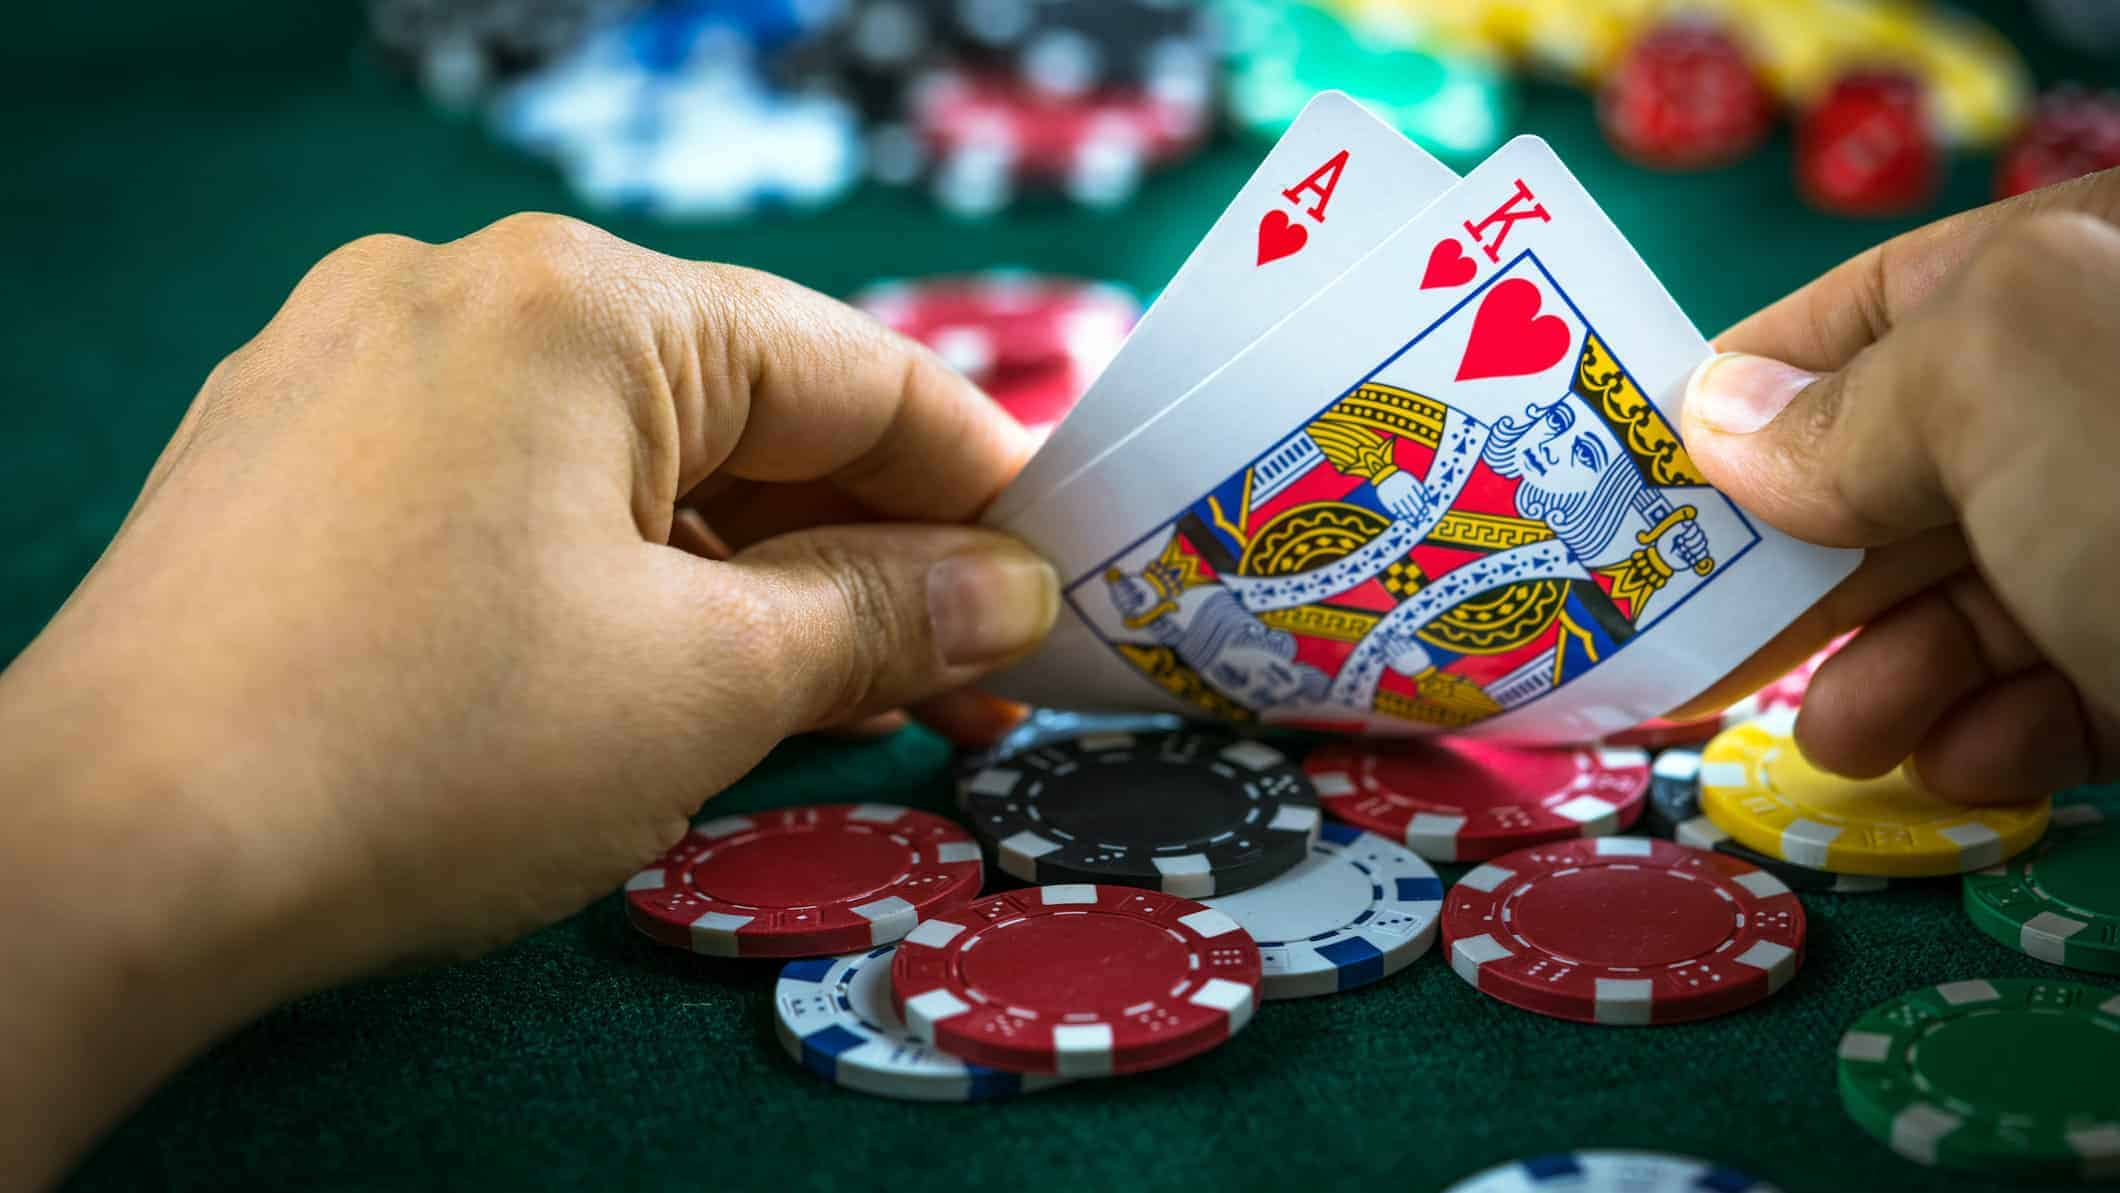 Roulette Systems – Does Martingale Theory Work?